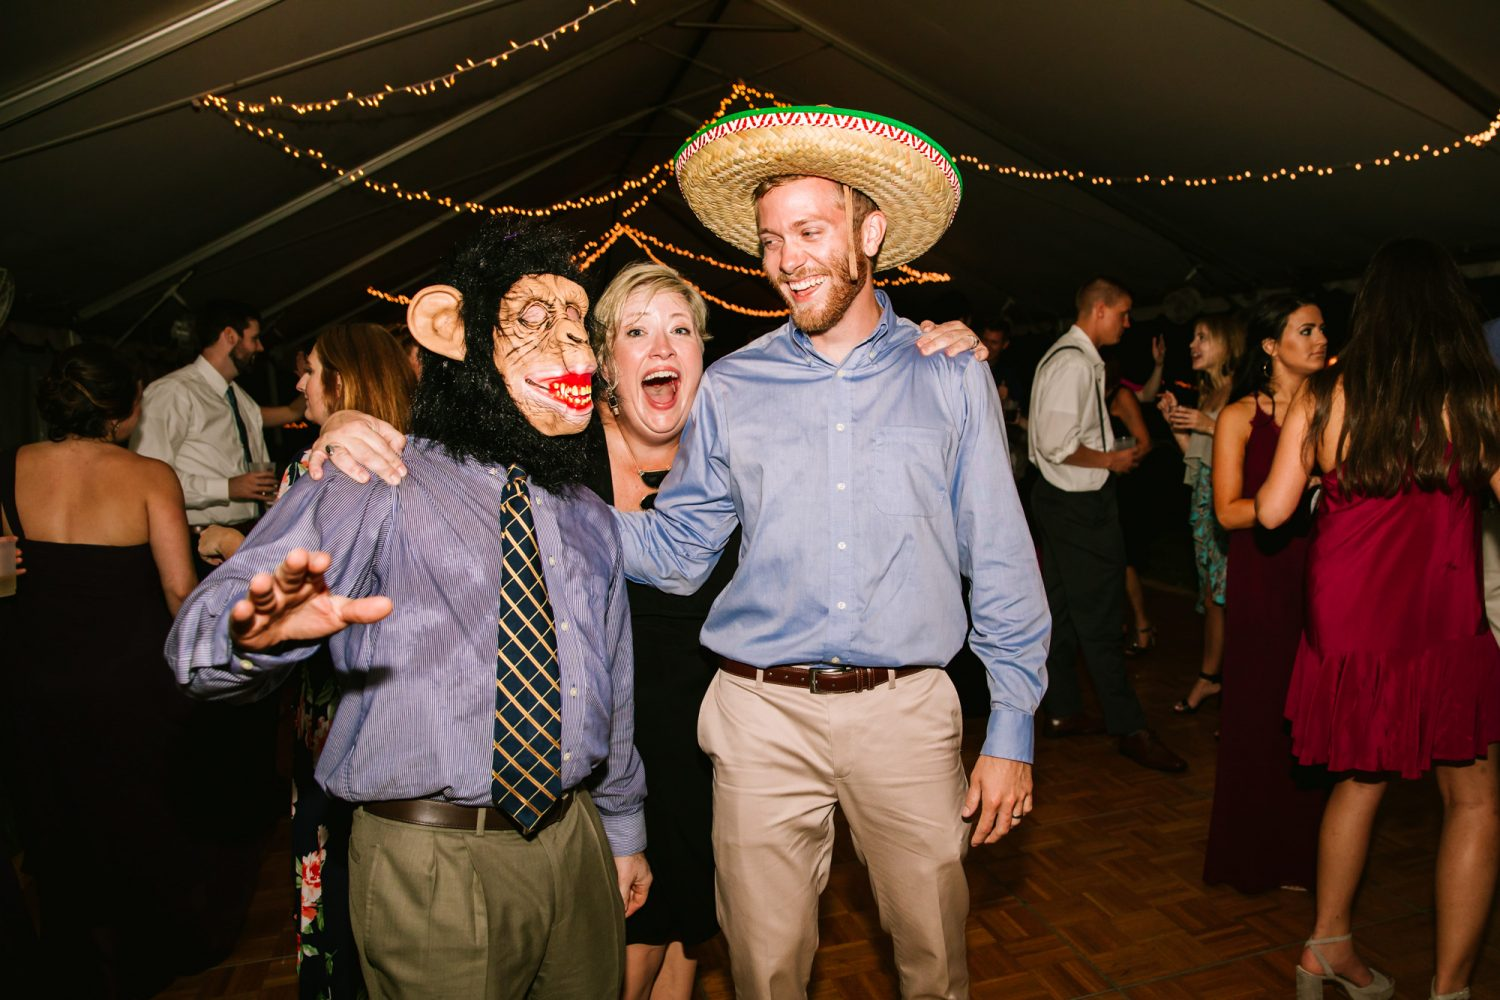 Waynesville, NC Wedding Photography | Wedding Reception Dance Floor with Photo Booth Props